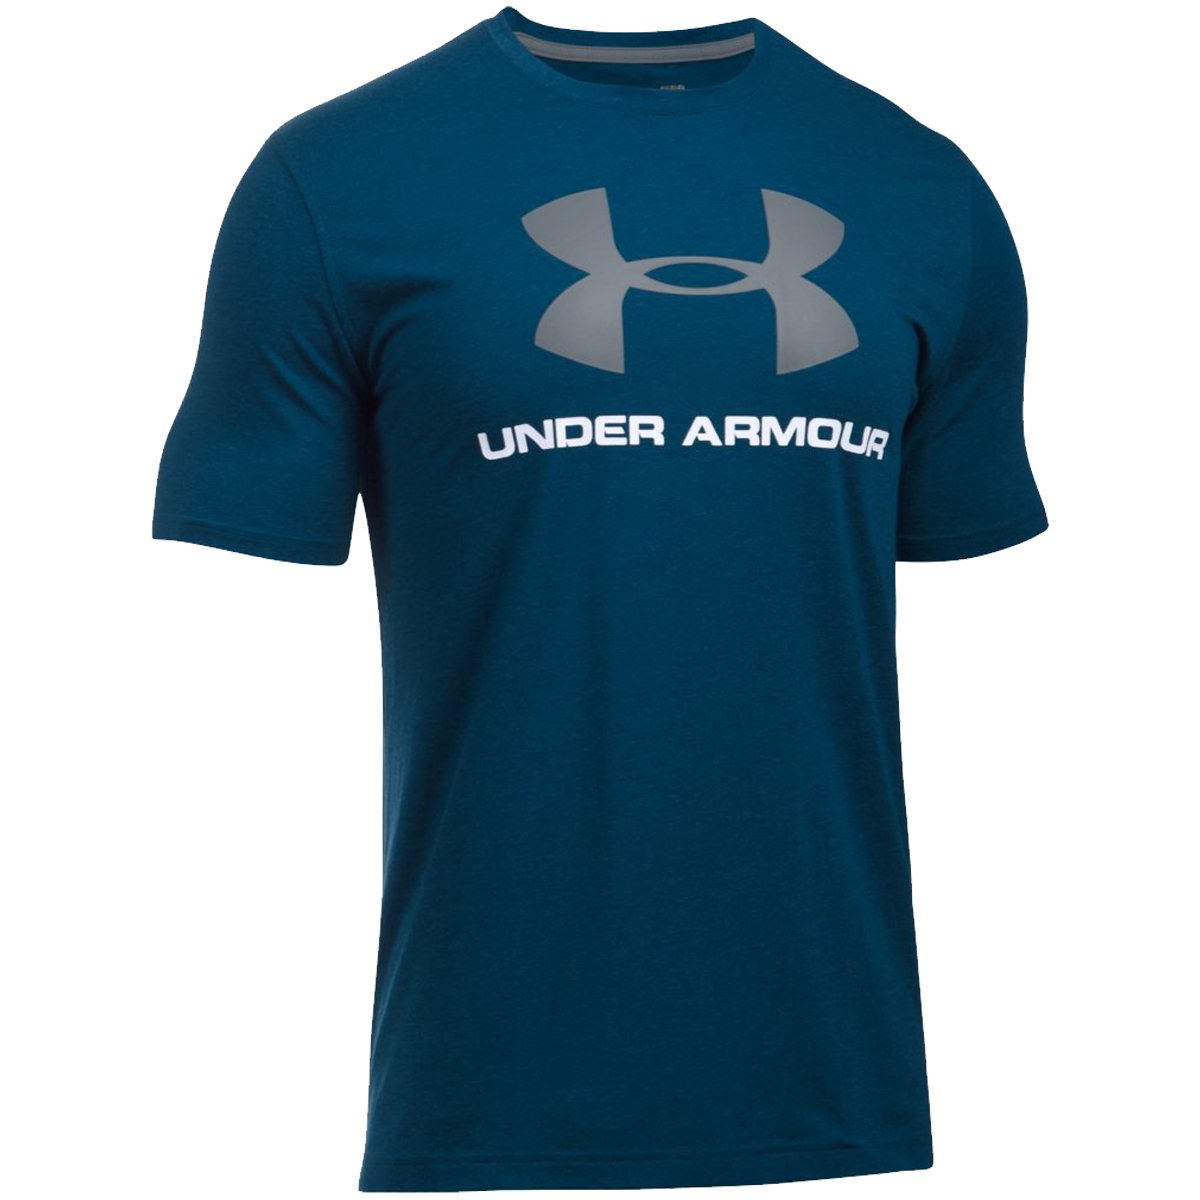 Under armour 2017 mens charged cotton sportstyle logo t for Under armour big logo t shirt